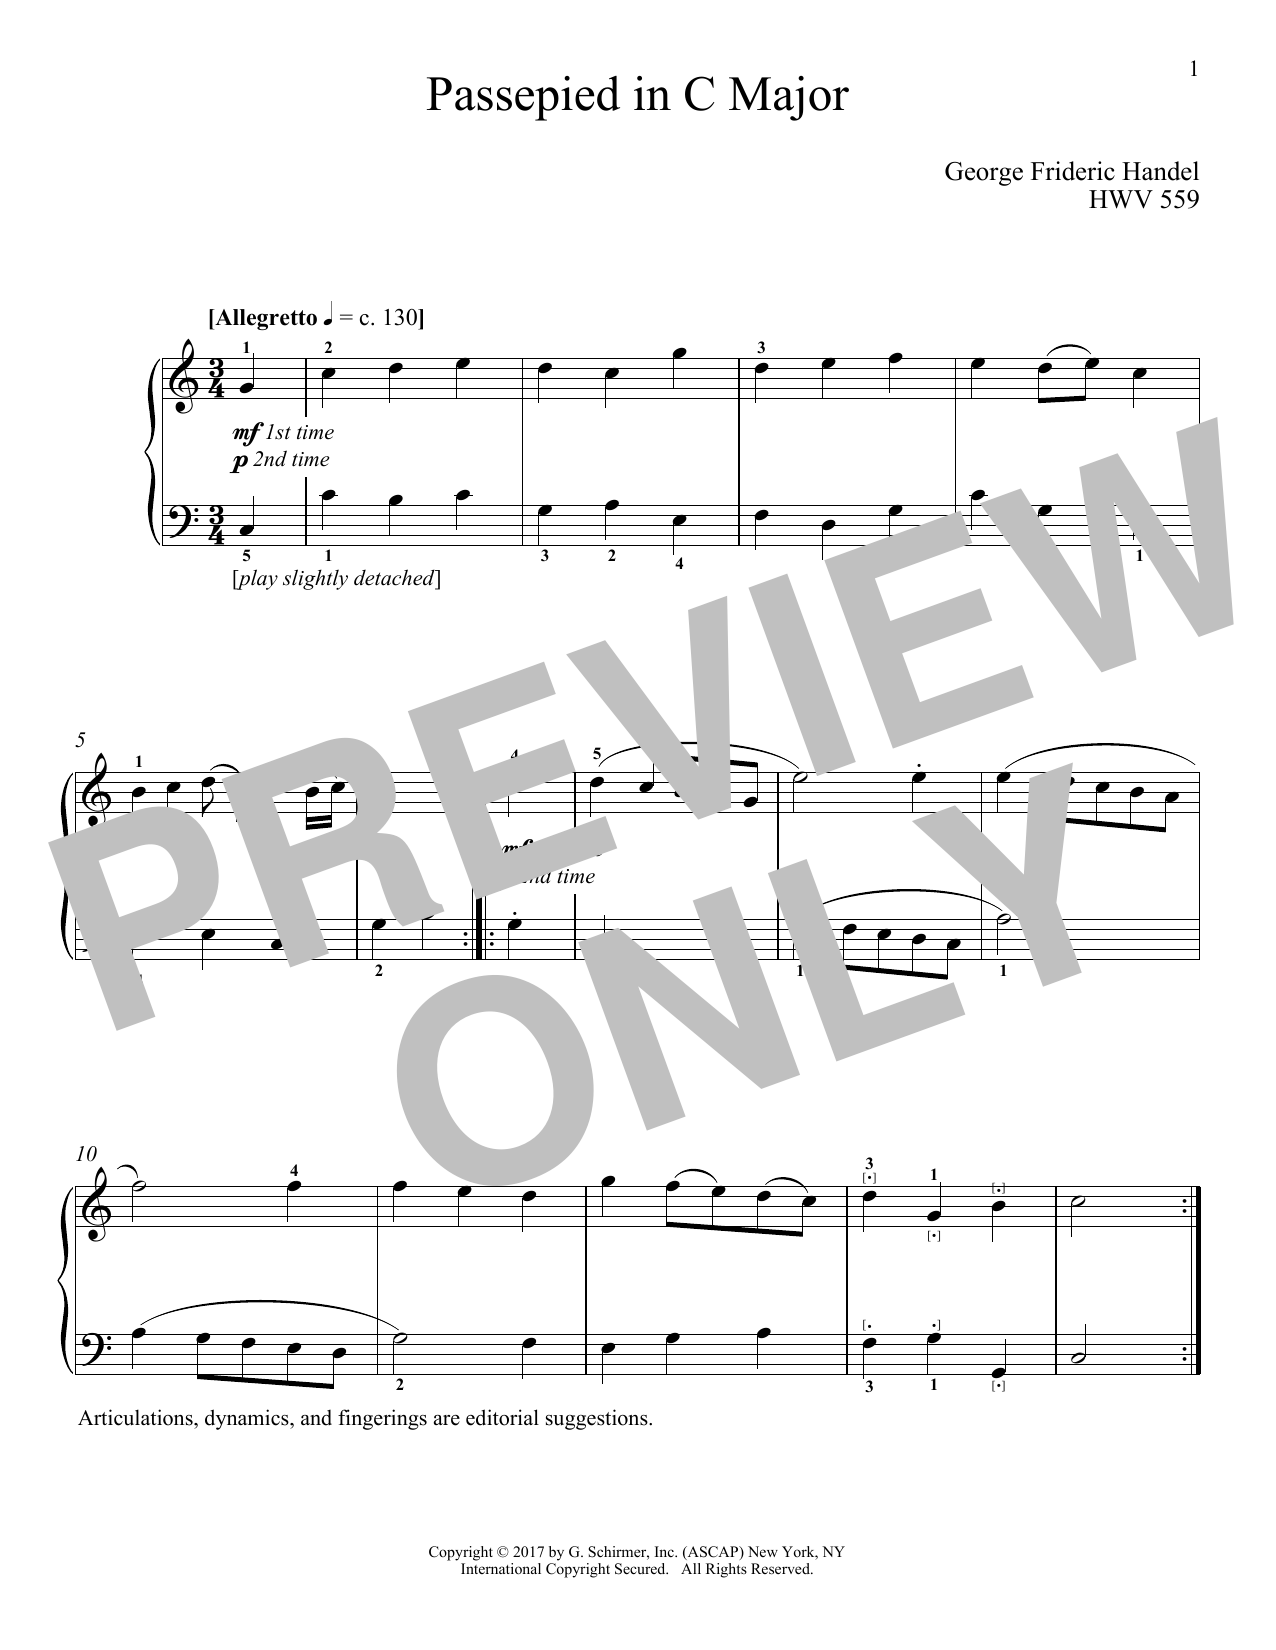 George Frideric Handel Passepied In C Major, HWV 559 sheet music notes and chords. Download Printable PDF.